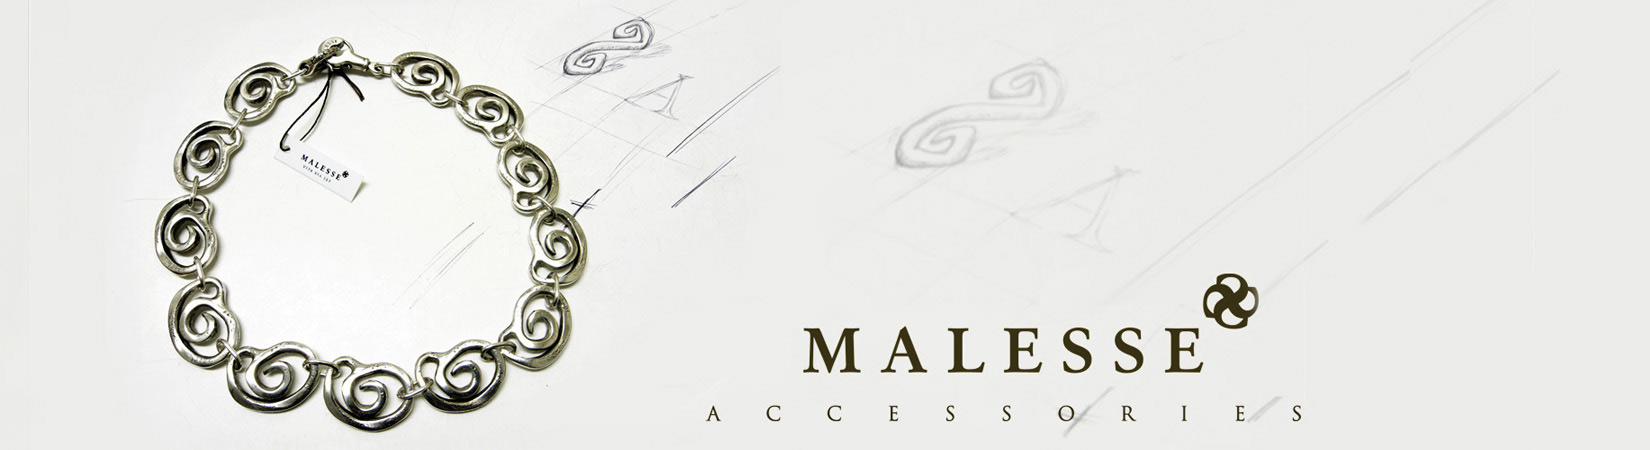 /Malesse - TALLER